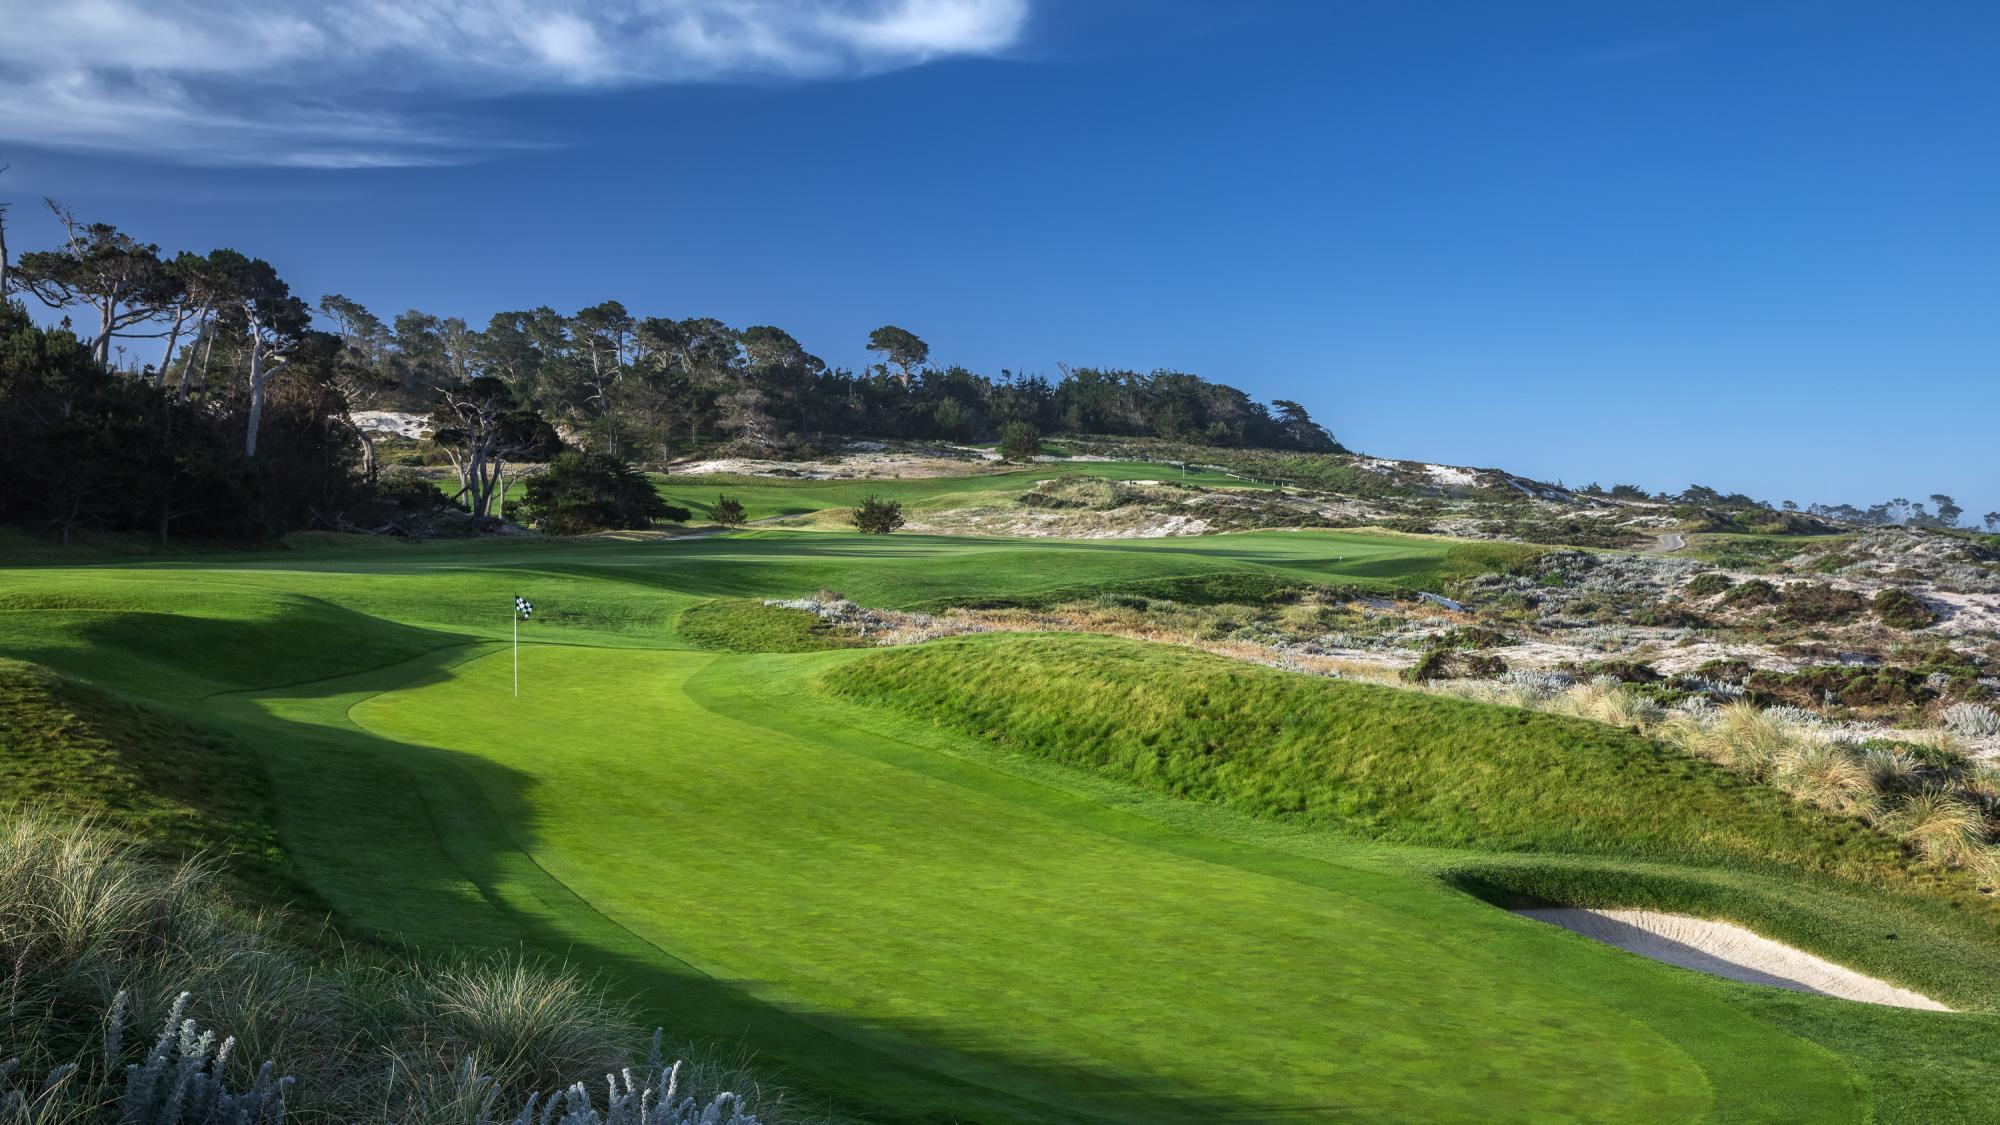 All The Spyglass Hill Golf Course's impressive golf course situated in gorgeous California.